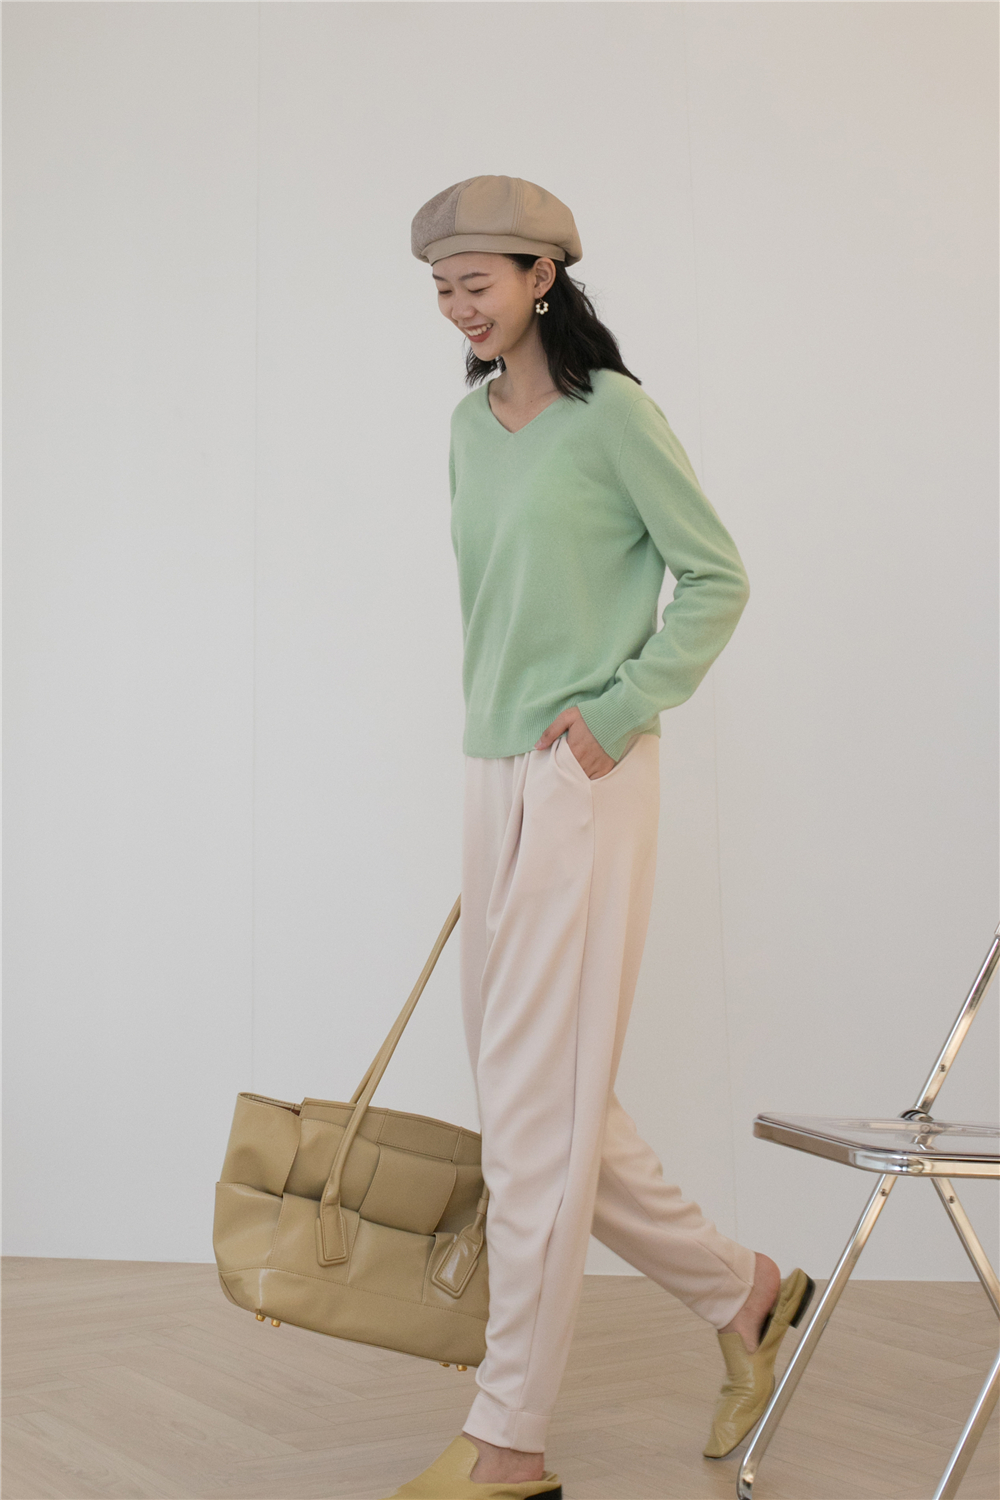 Autumn 2020 new style bodywear womens fashion modal is loose and slim, comfortable and versatile solid color casual tapered pants